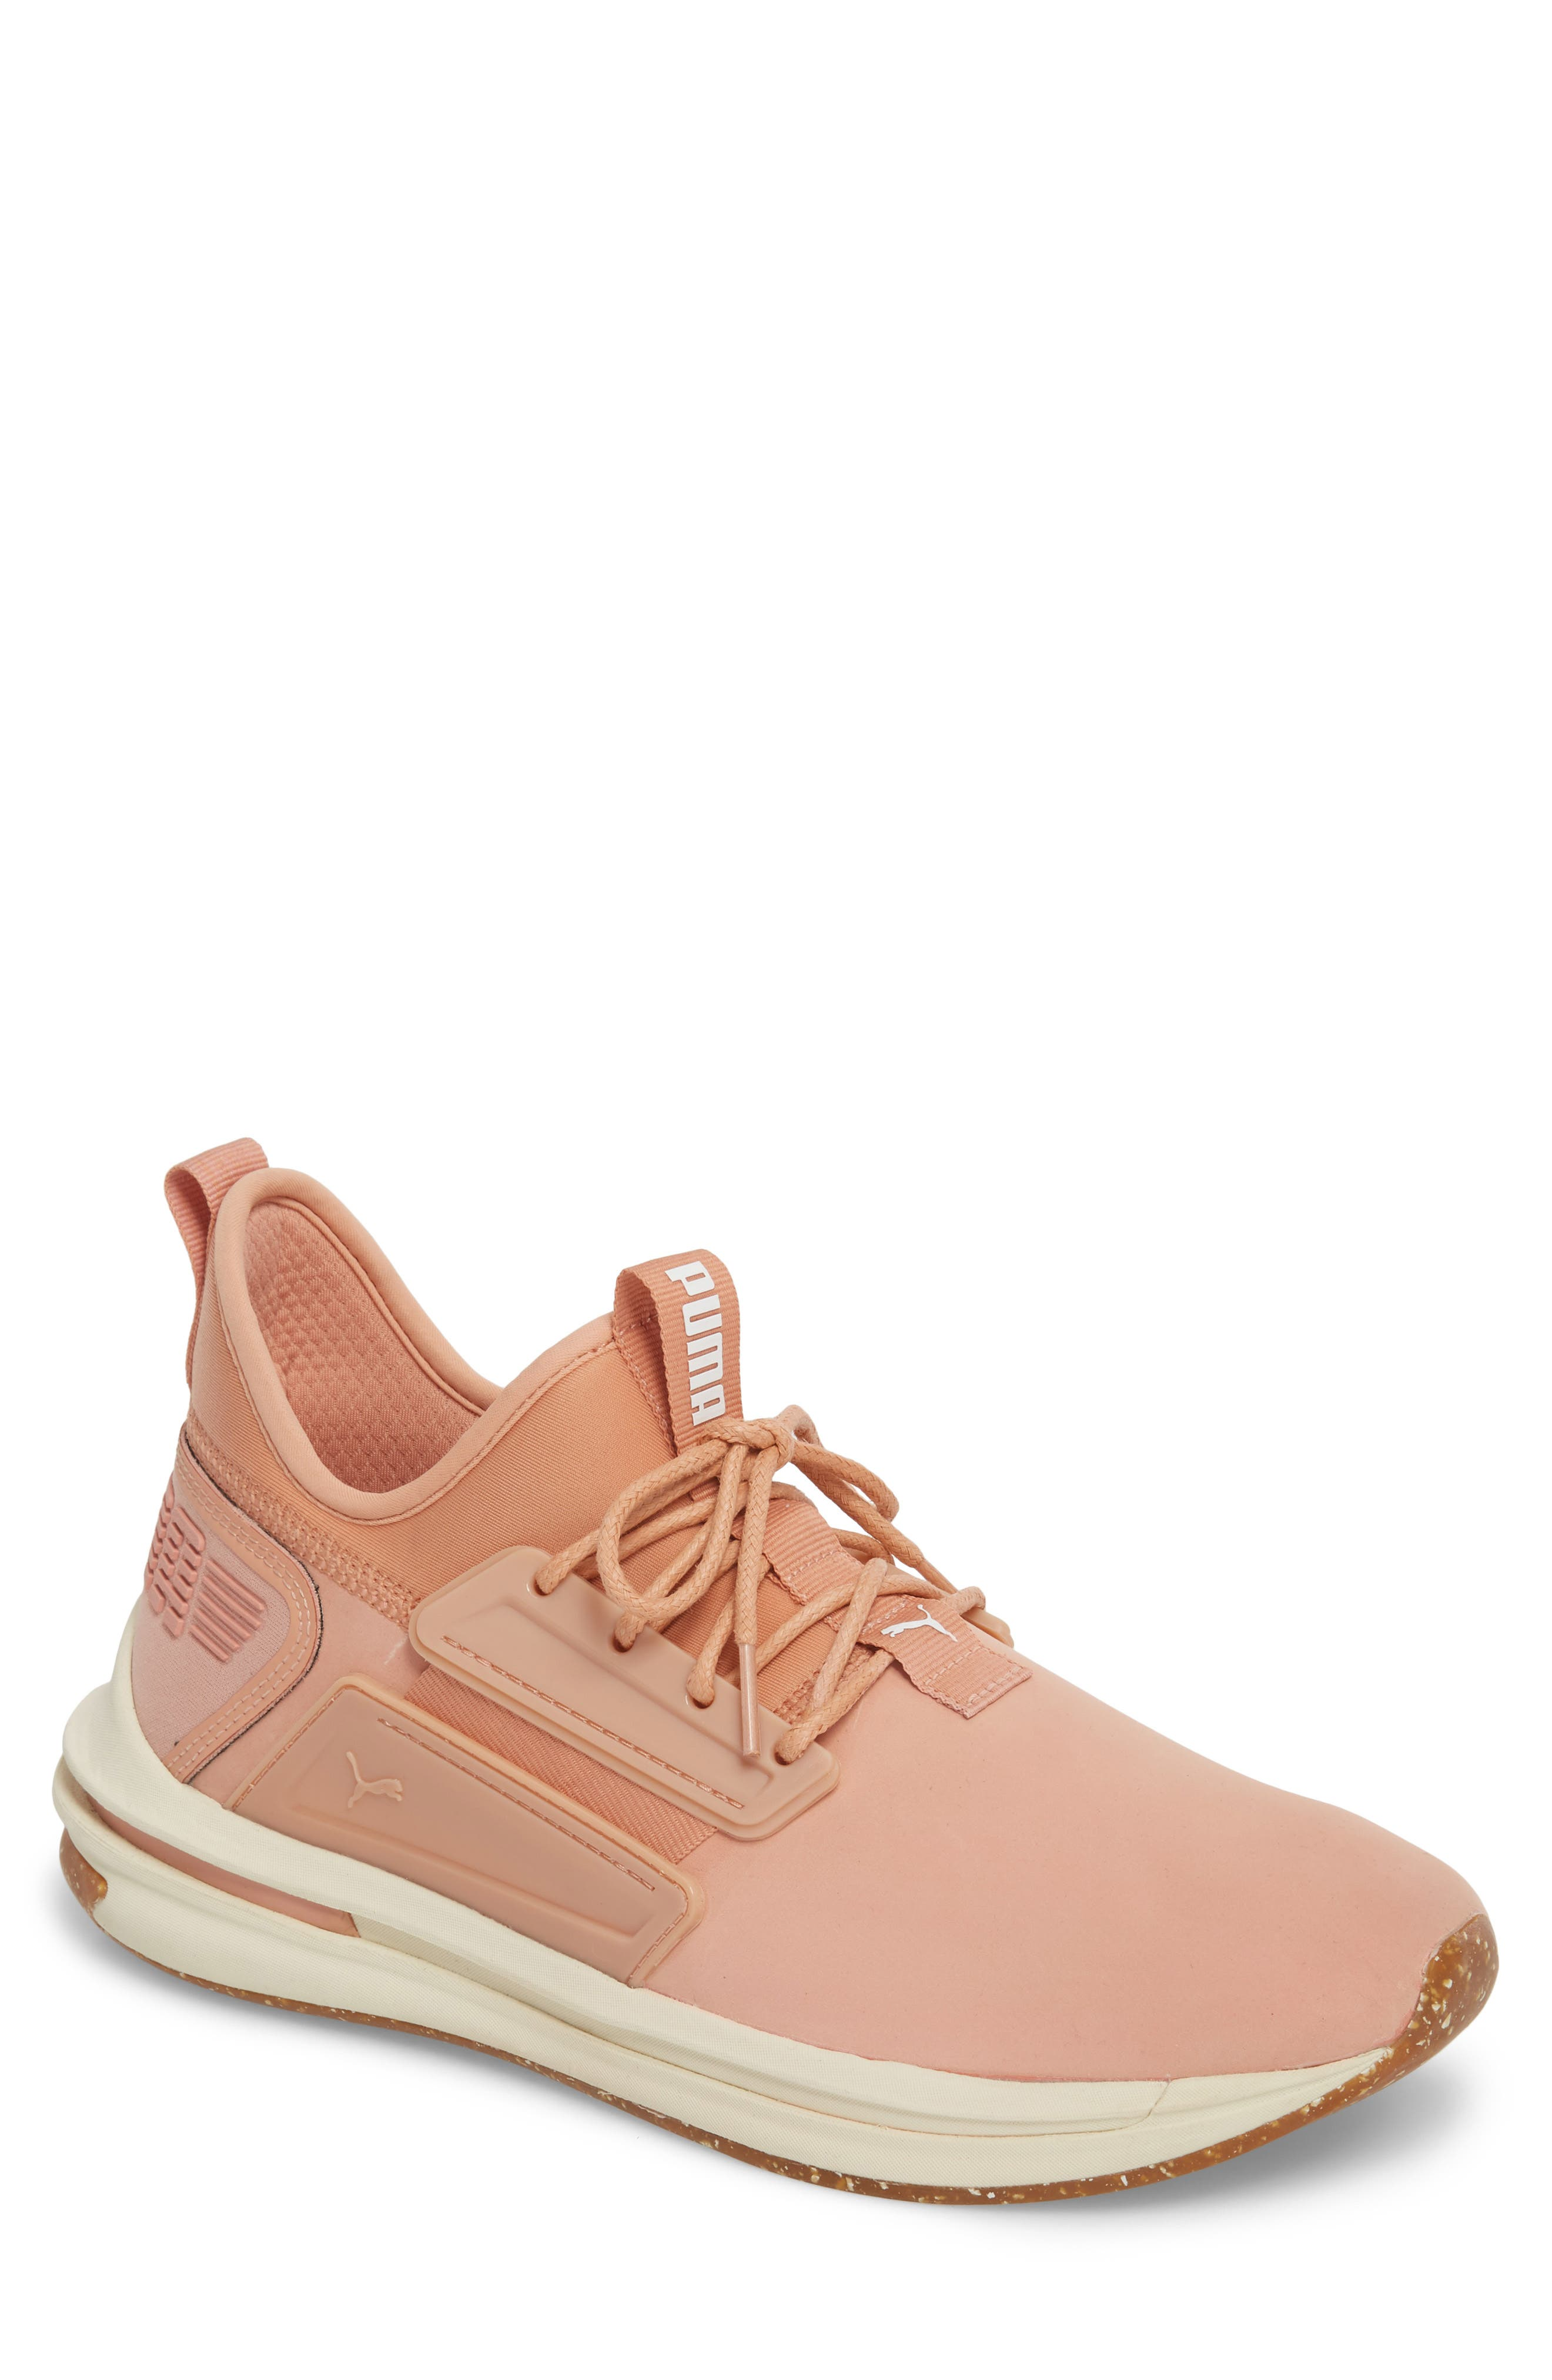 IGNITE Limitless SR Nature Sneaker,                             Main thumbnail 1, color,                             Muted Clay Leather/ Suede